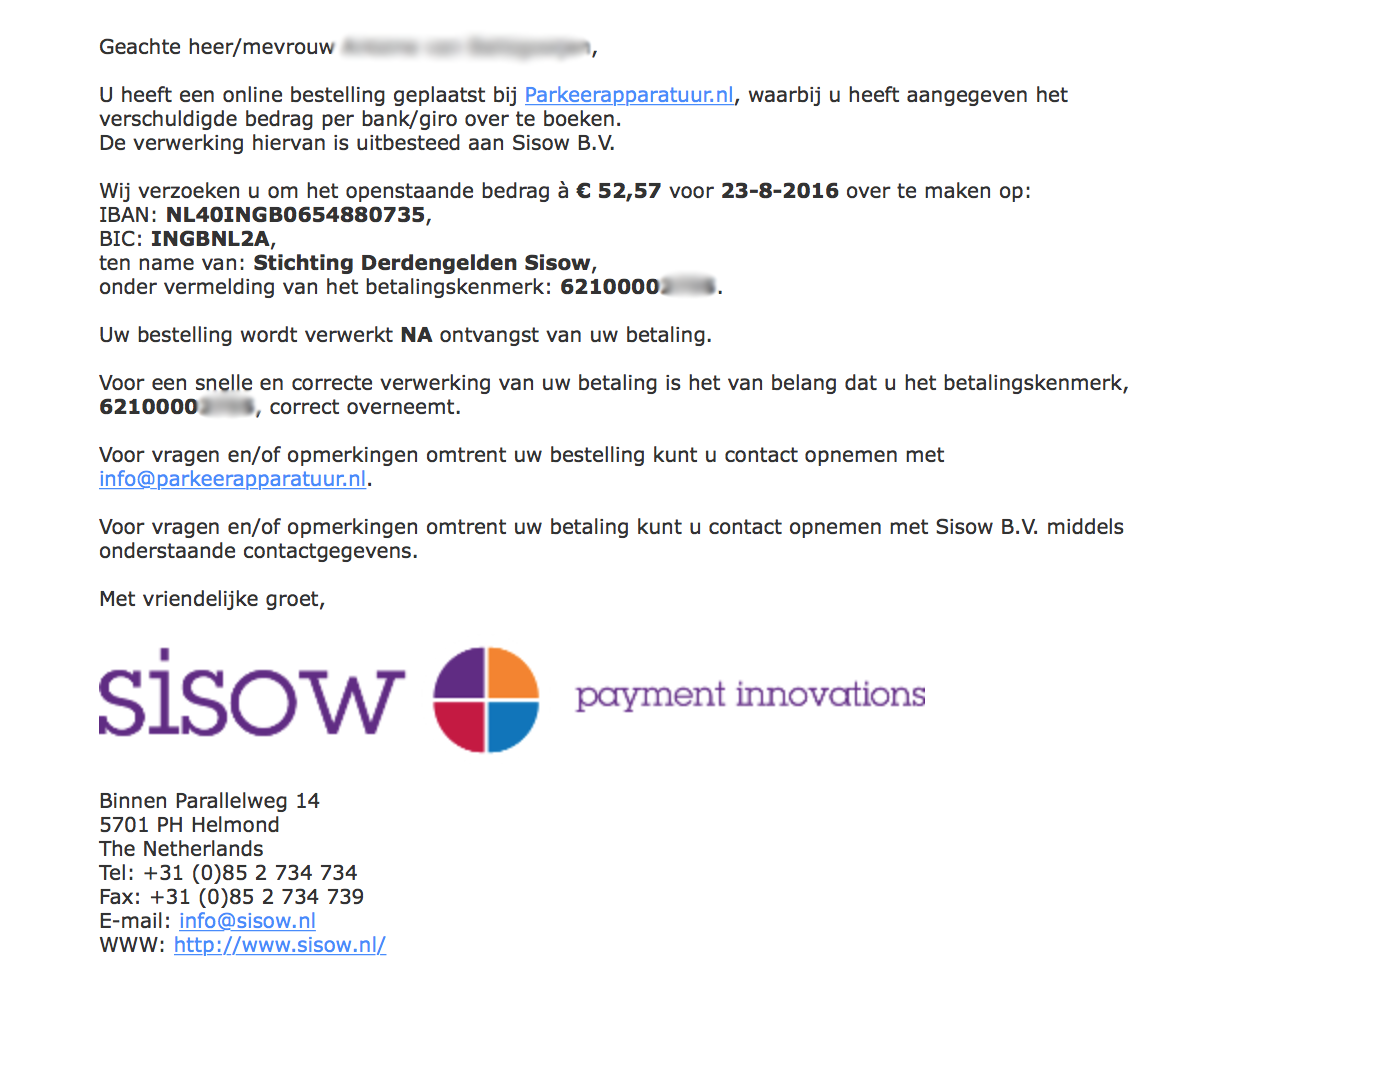 e-mail Sisow